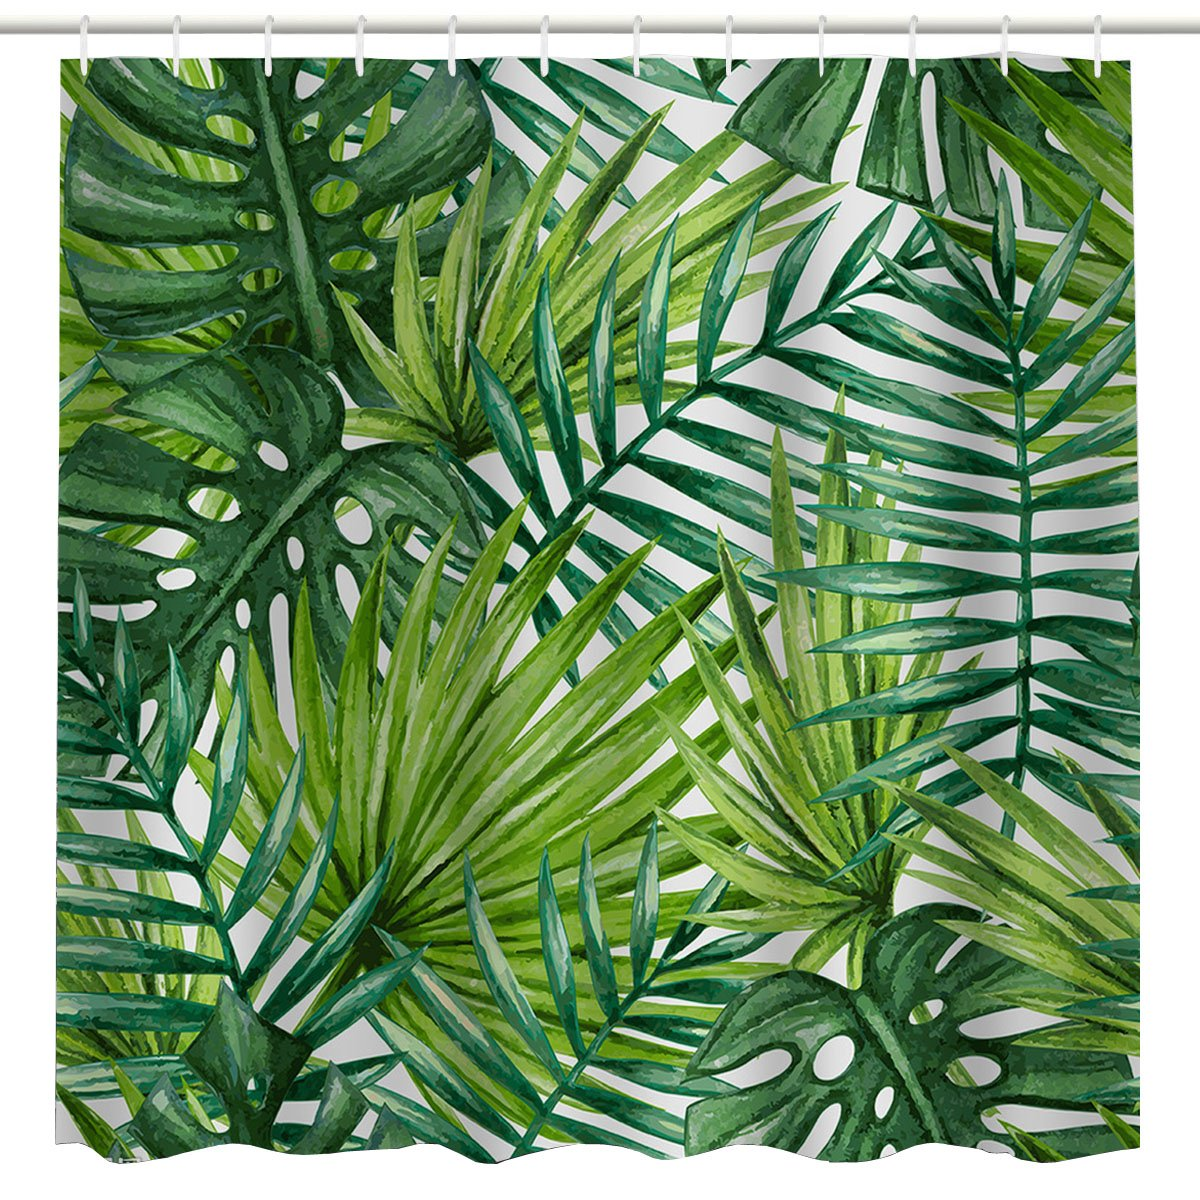 BROSHAN Leaf Print Shower Curtain Fabric Tropical Palm Leaves Pattern Hawaiian Plant Bathroom Decoration Green Natural Waterproof Fabric Bathroom Accessory with Hooks,